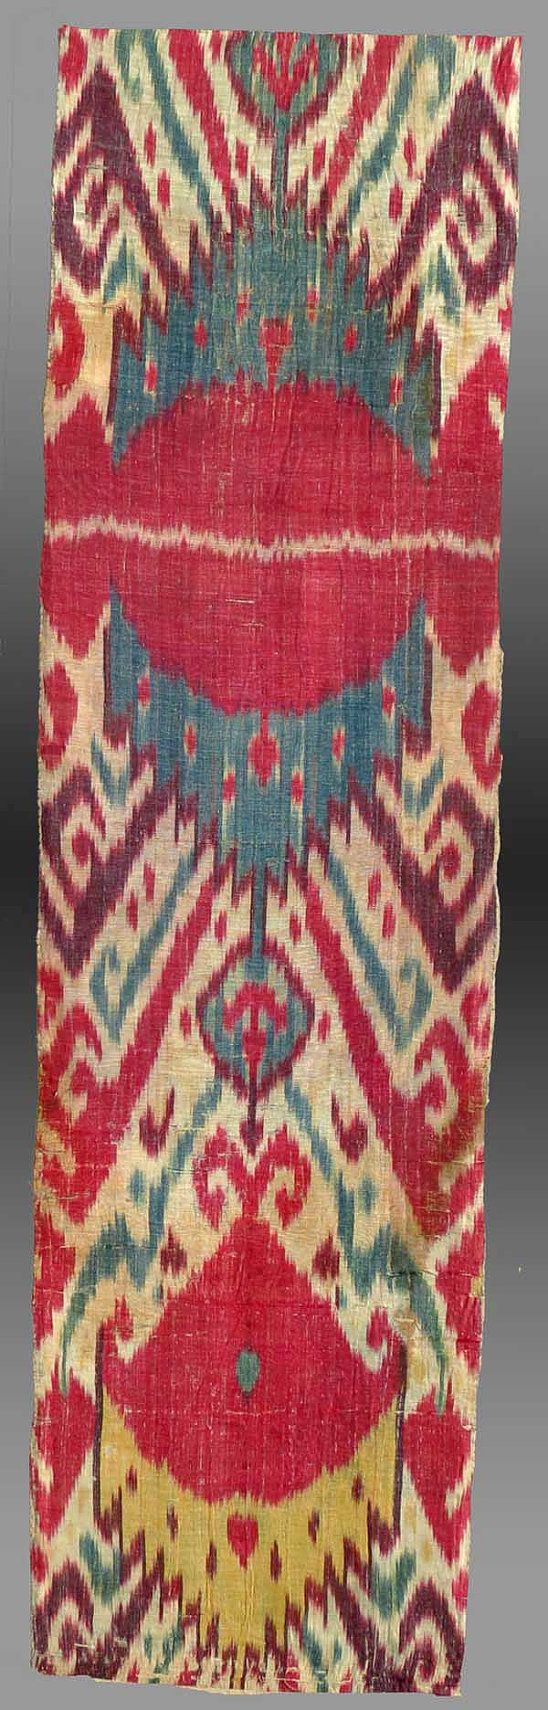 Vintage Antique Silk Ikat Textile Central Asia by tcEclecticImages